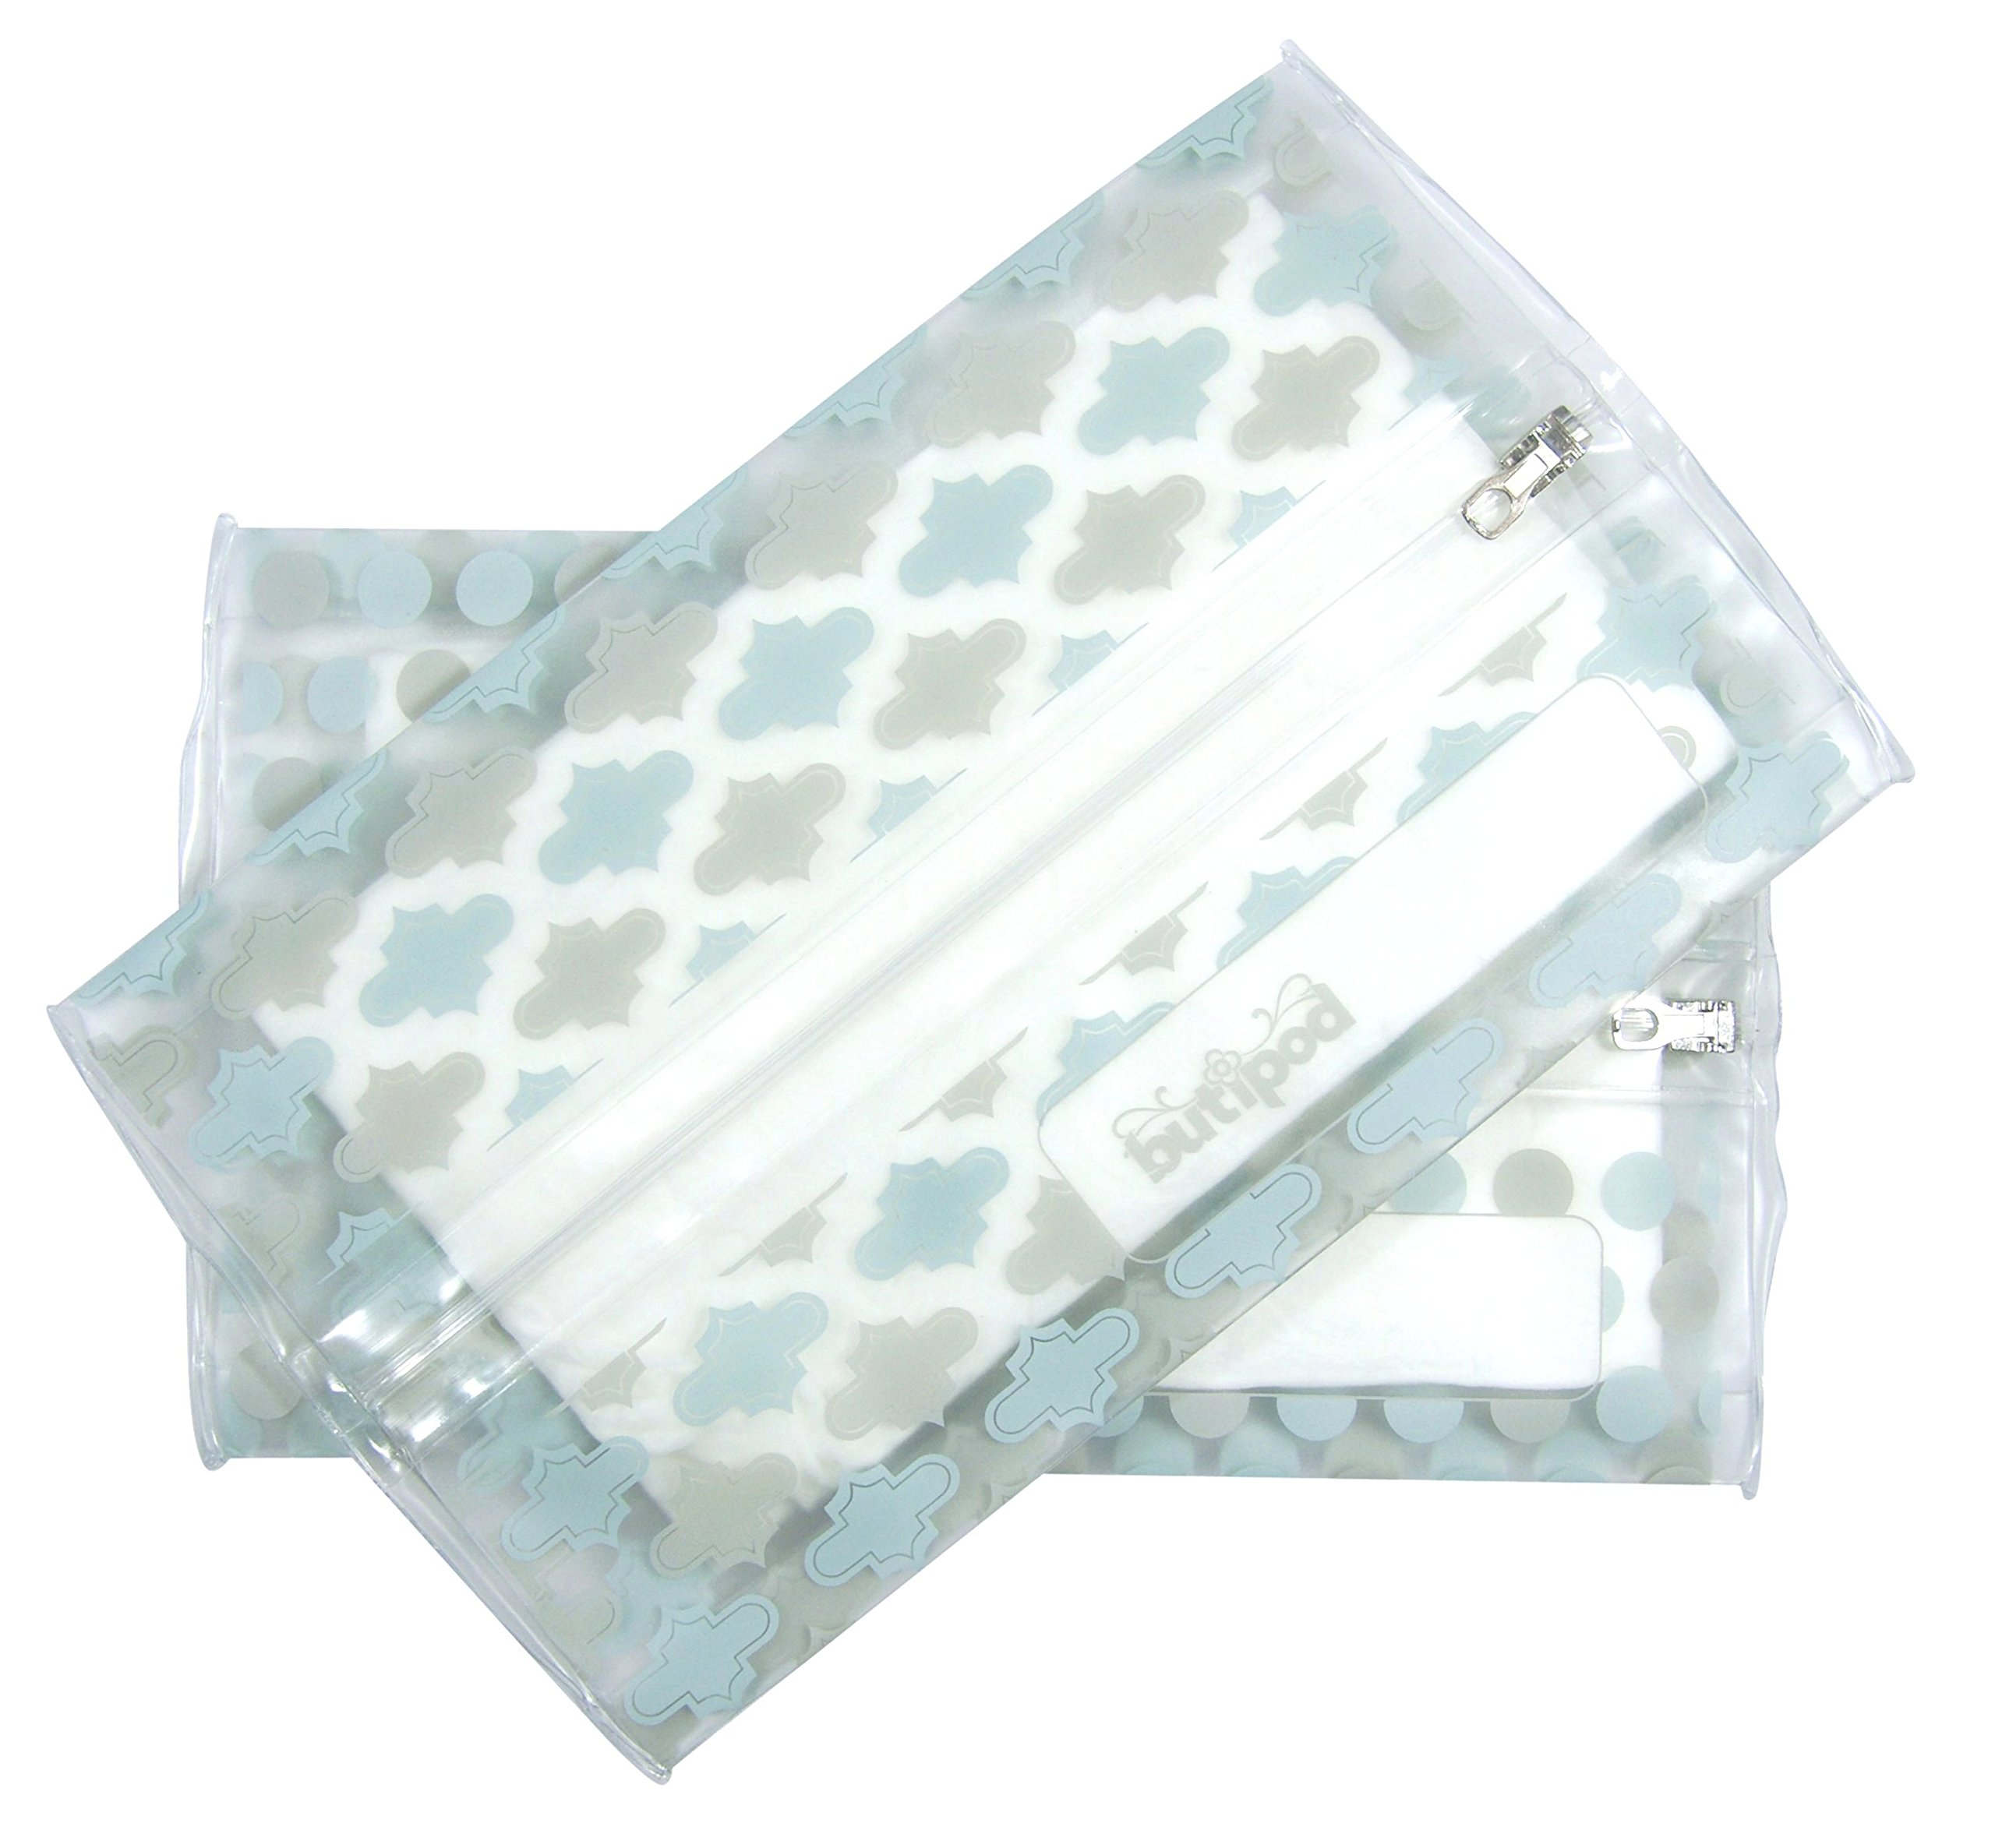 Buti-pods Wipes Dispenser & Travel Case | no more dry wipes | easy to refill ! (2-Pack, aquamarine blue grey tiles & dots)